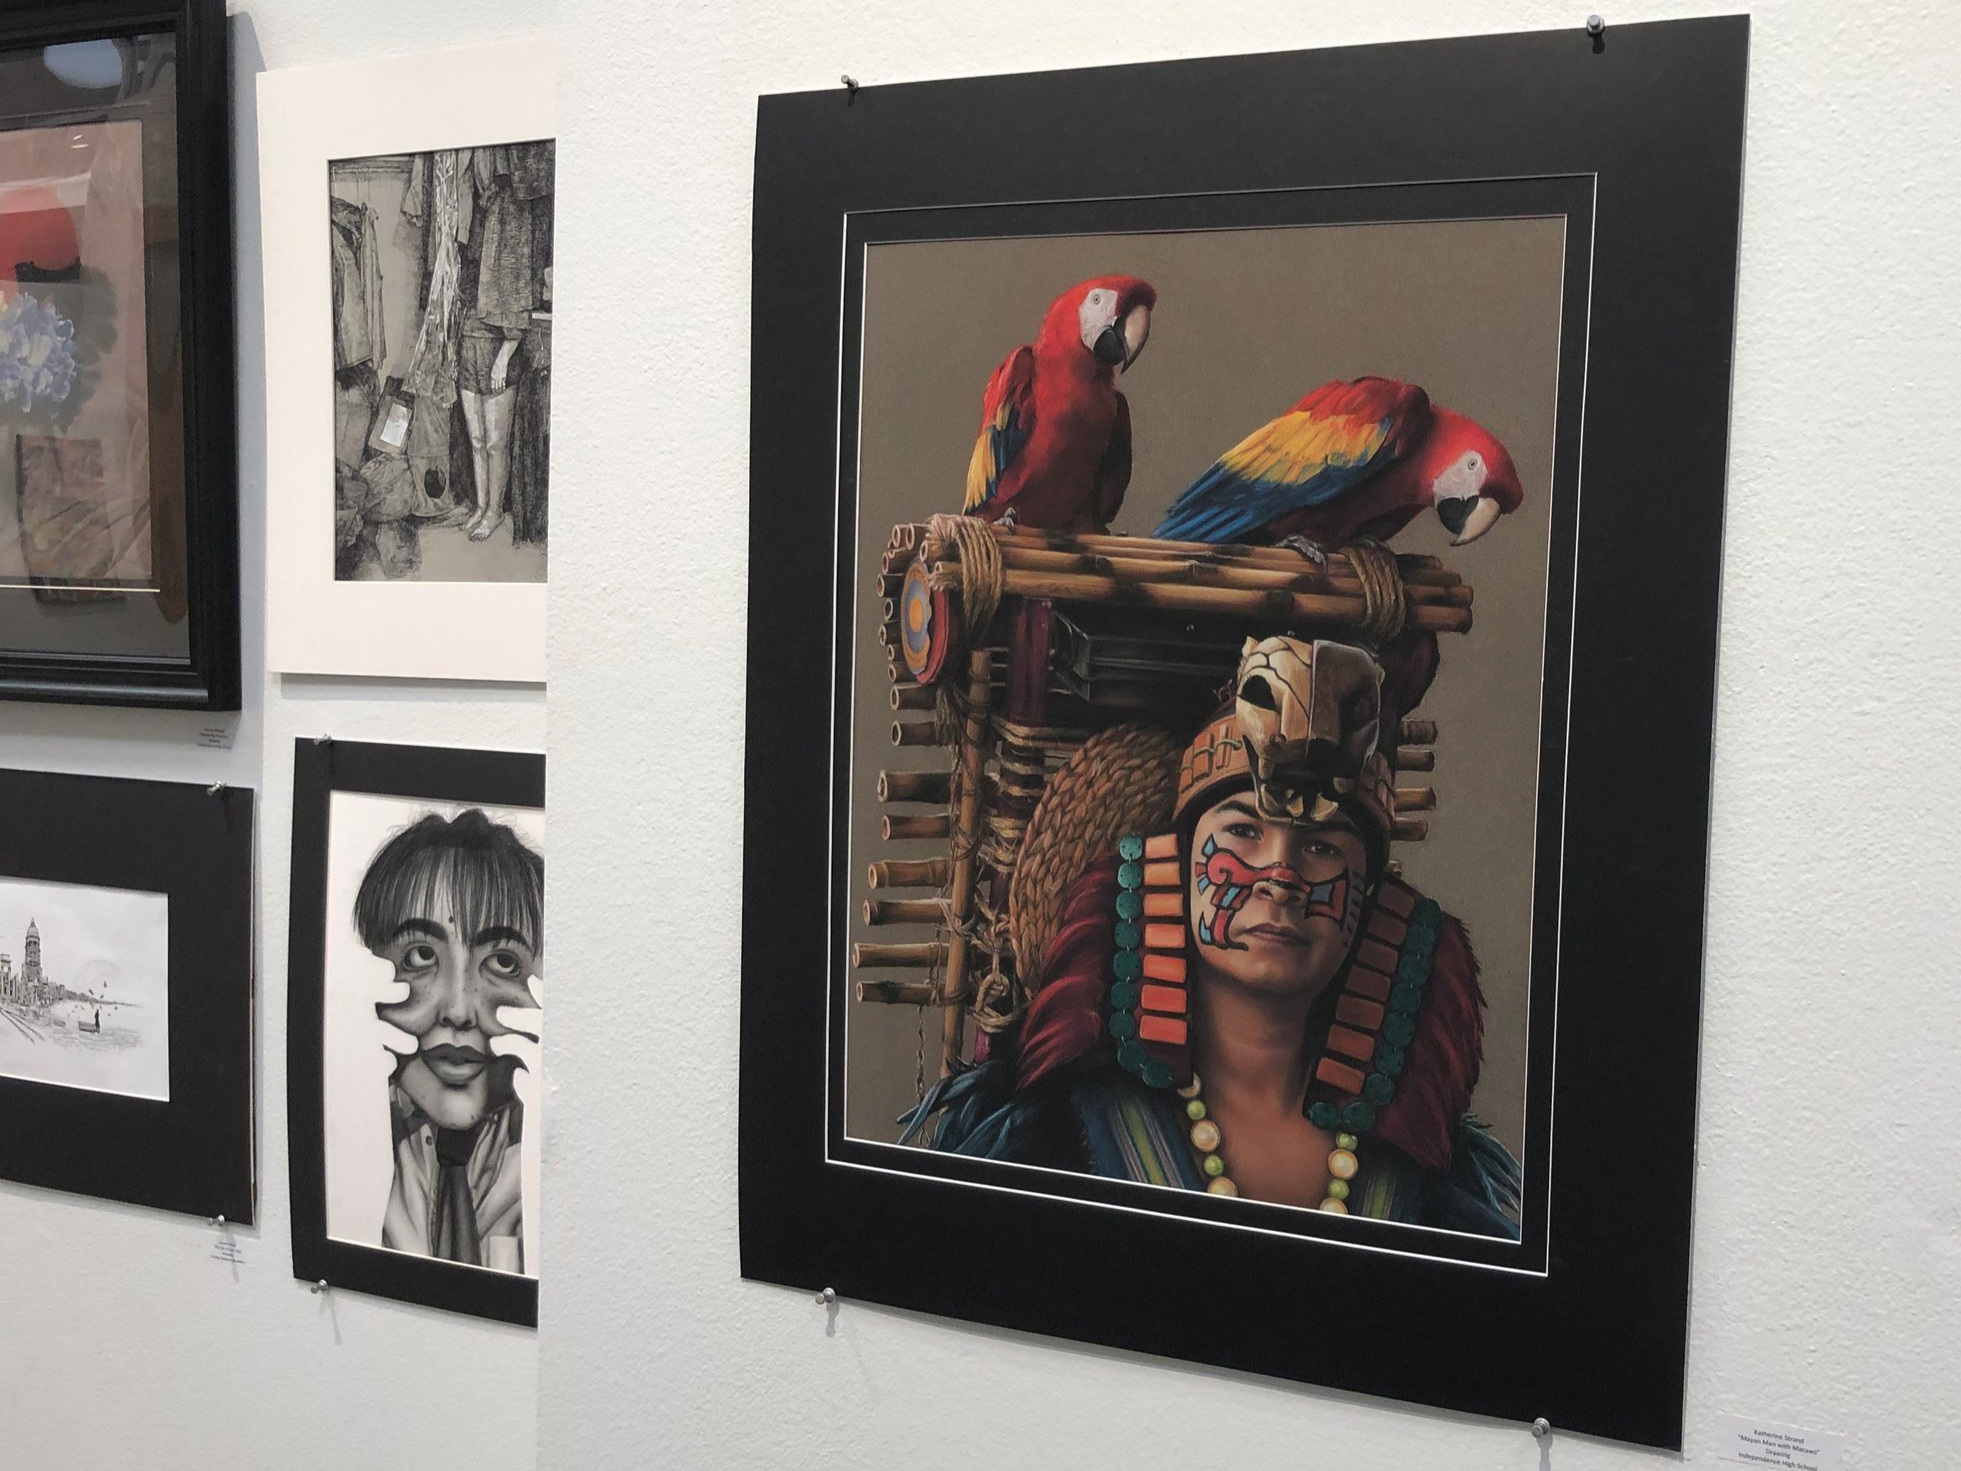 Gallery Show Feb 24th - March 25th - H. Paxton Moore Fine Arts Gallery El Centro College 801 Main Street Dallas, TX 75202Gallery Hours:Mon & Wed 10am - 4pm Thurs 10am - 7pm Fri 10am - 3pm Sat & Sun CLOSED